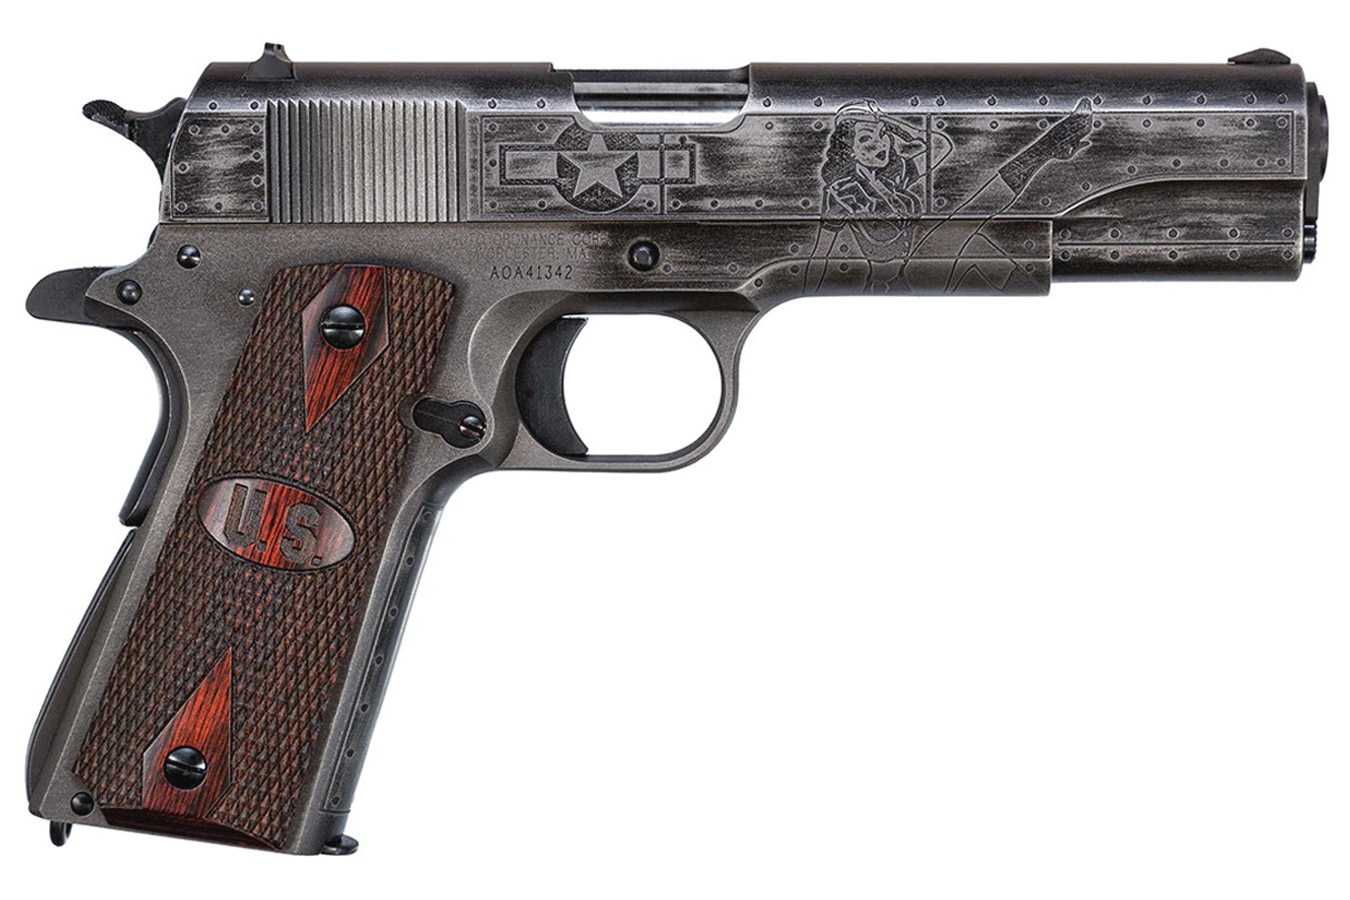 aa5255dd8734 Auto Ordnance 1911 Victory Girls Special Edition WW2 45 ACP with ...